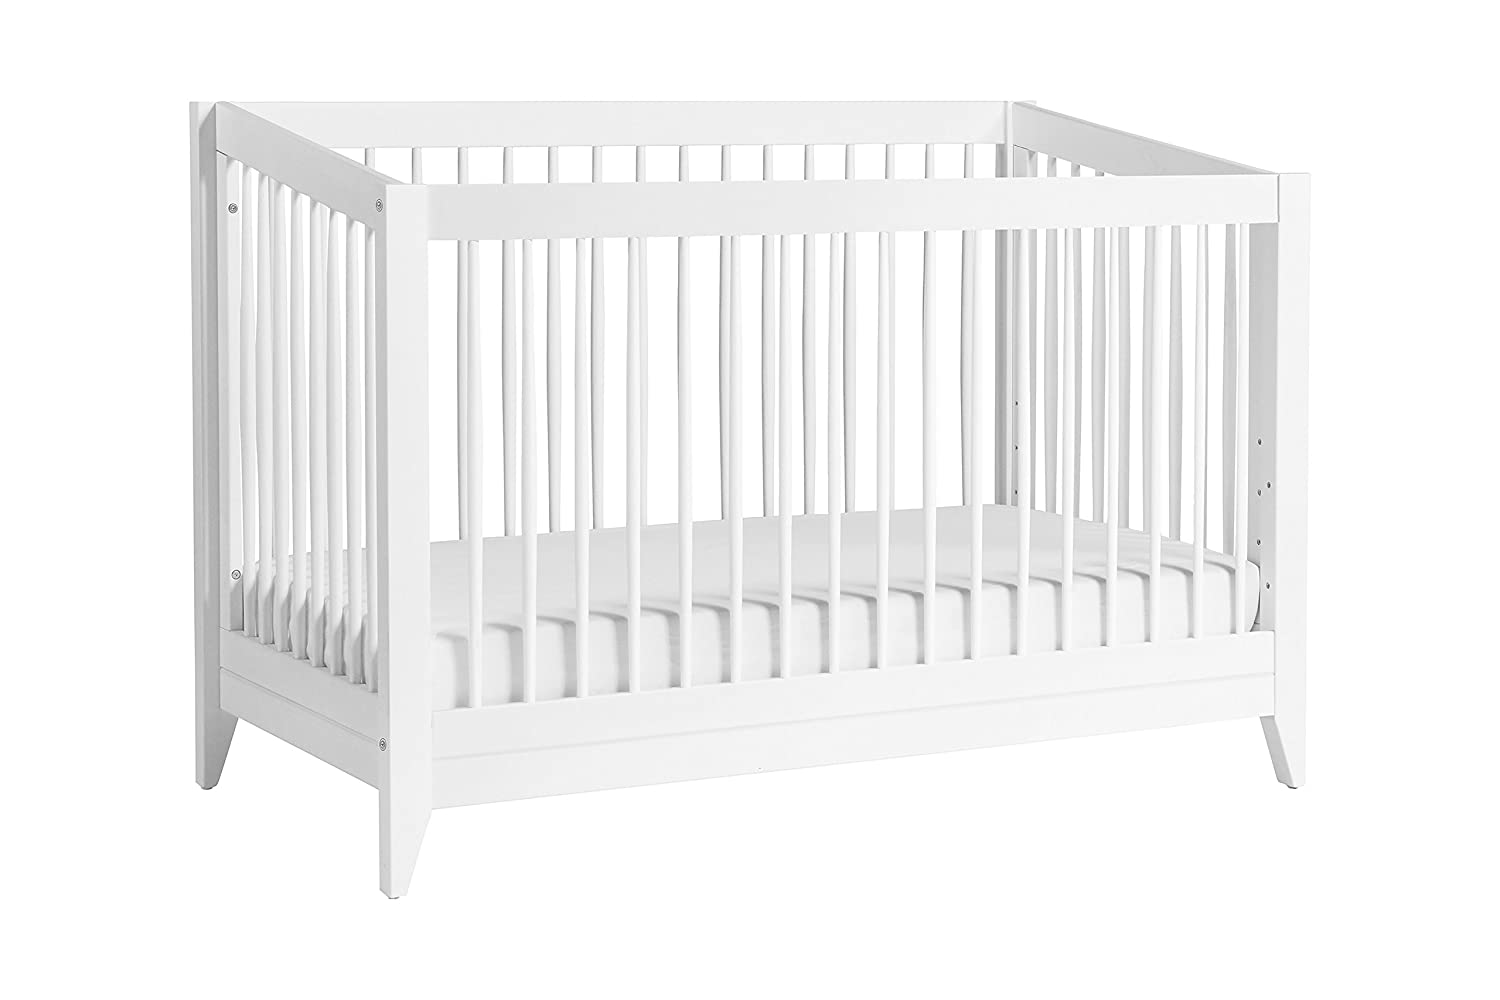 Babyletto Sprout 4-in-1 Convertible Crib with Toddler Bed Conversion Kit, Chestnut / Natural DaVinci - DROPSHIP M10301CTN